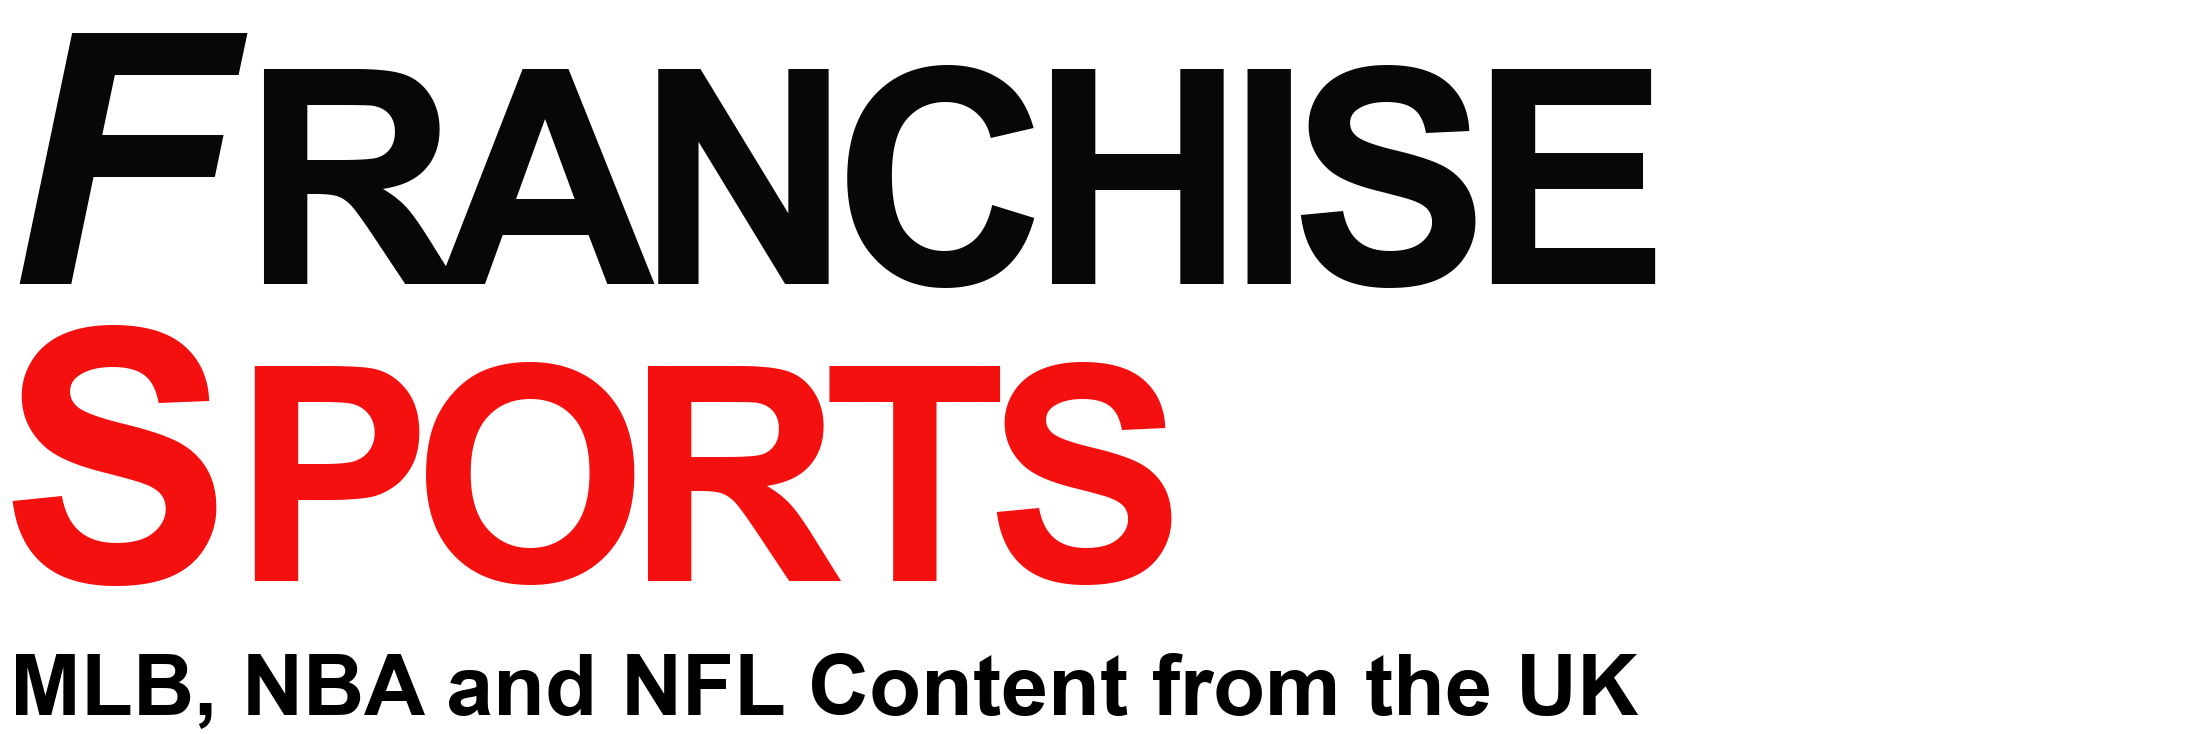 Franchise Sports - MLB, NBA, NFL from the UK